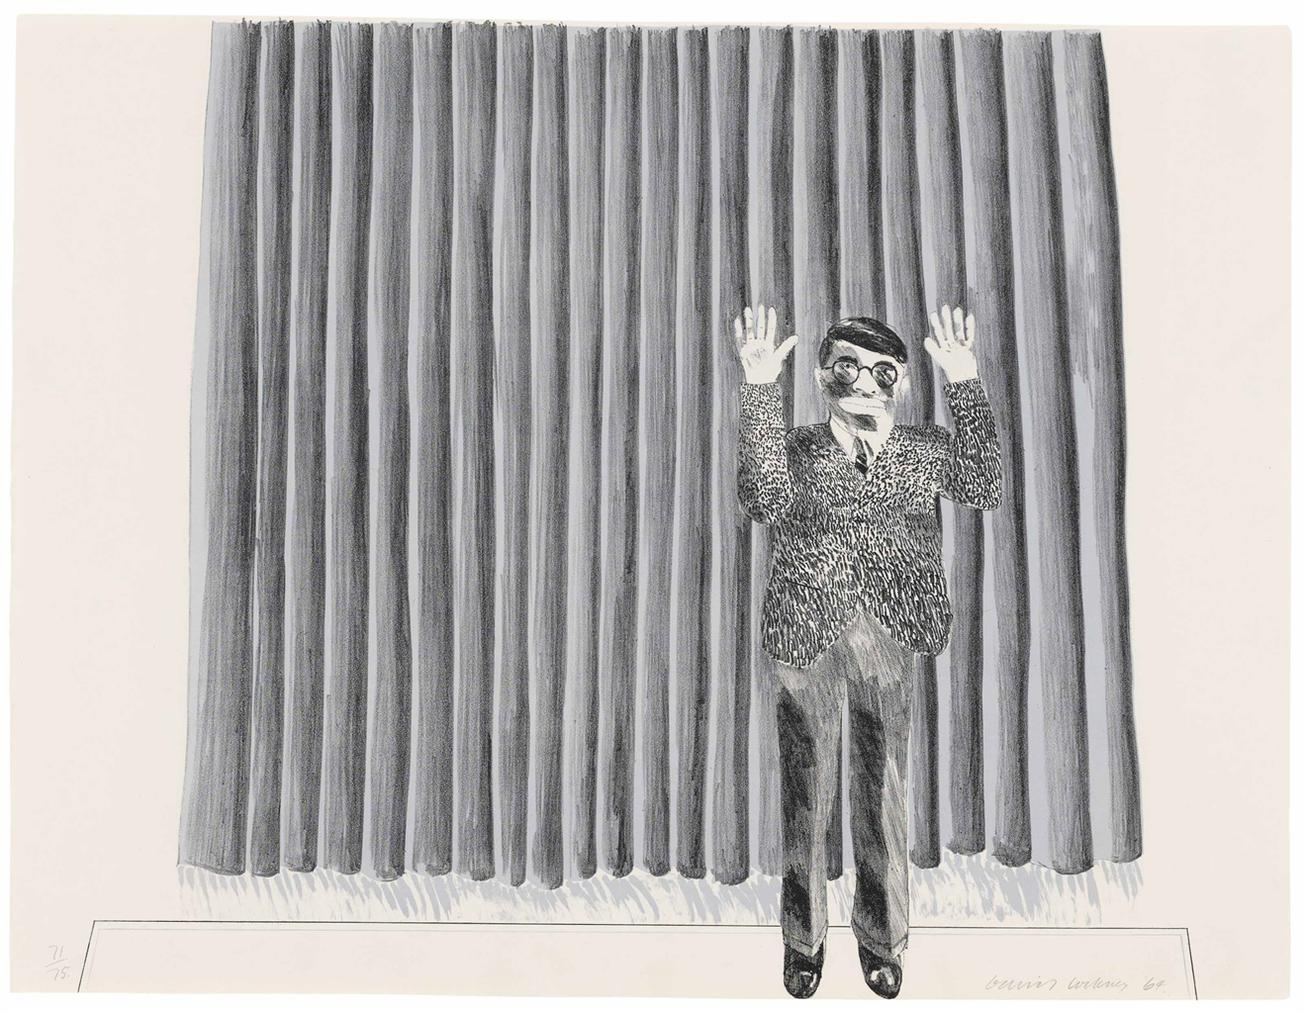 David Hockney-Figure By A Curtain-1964